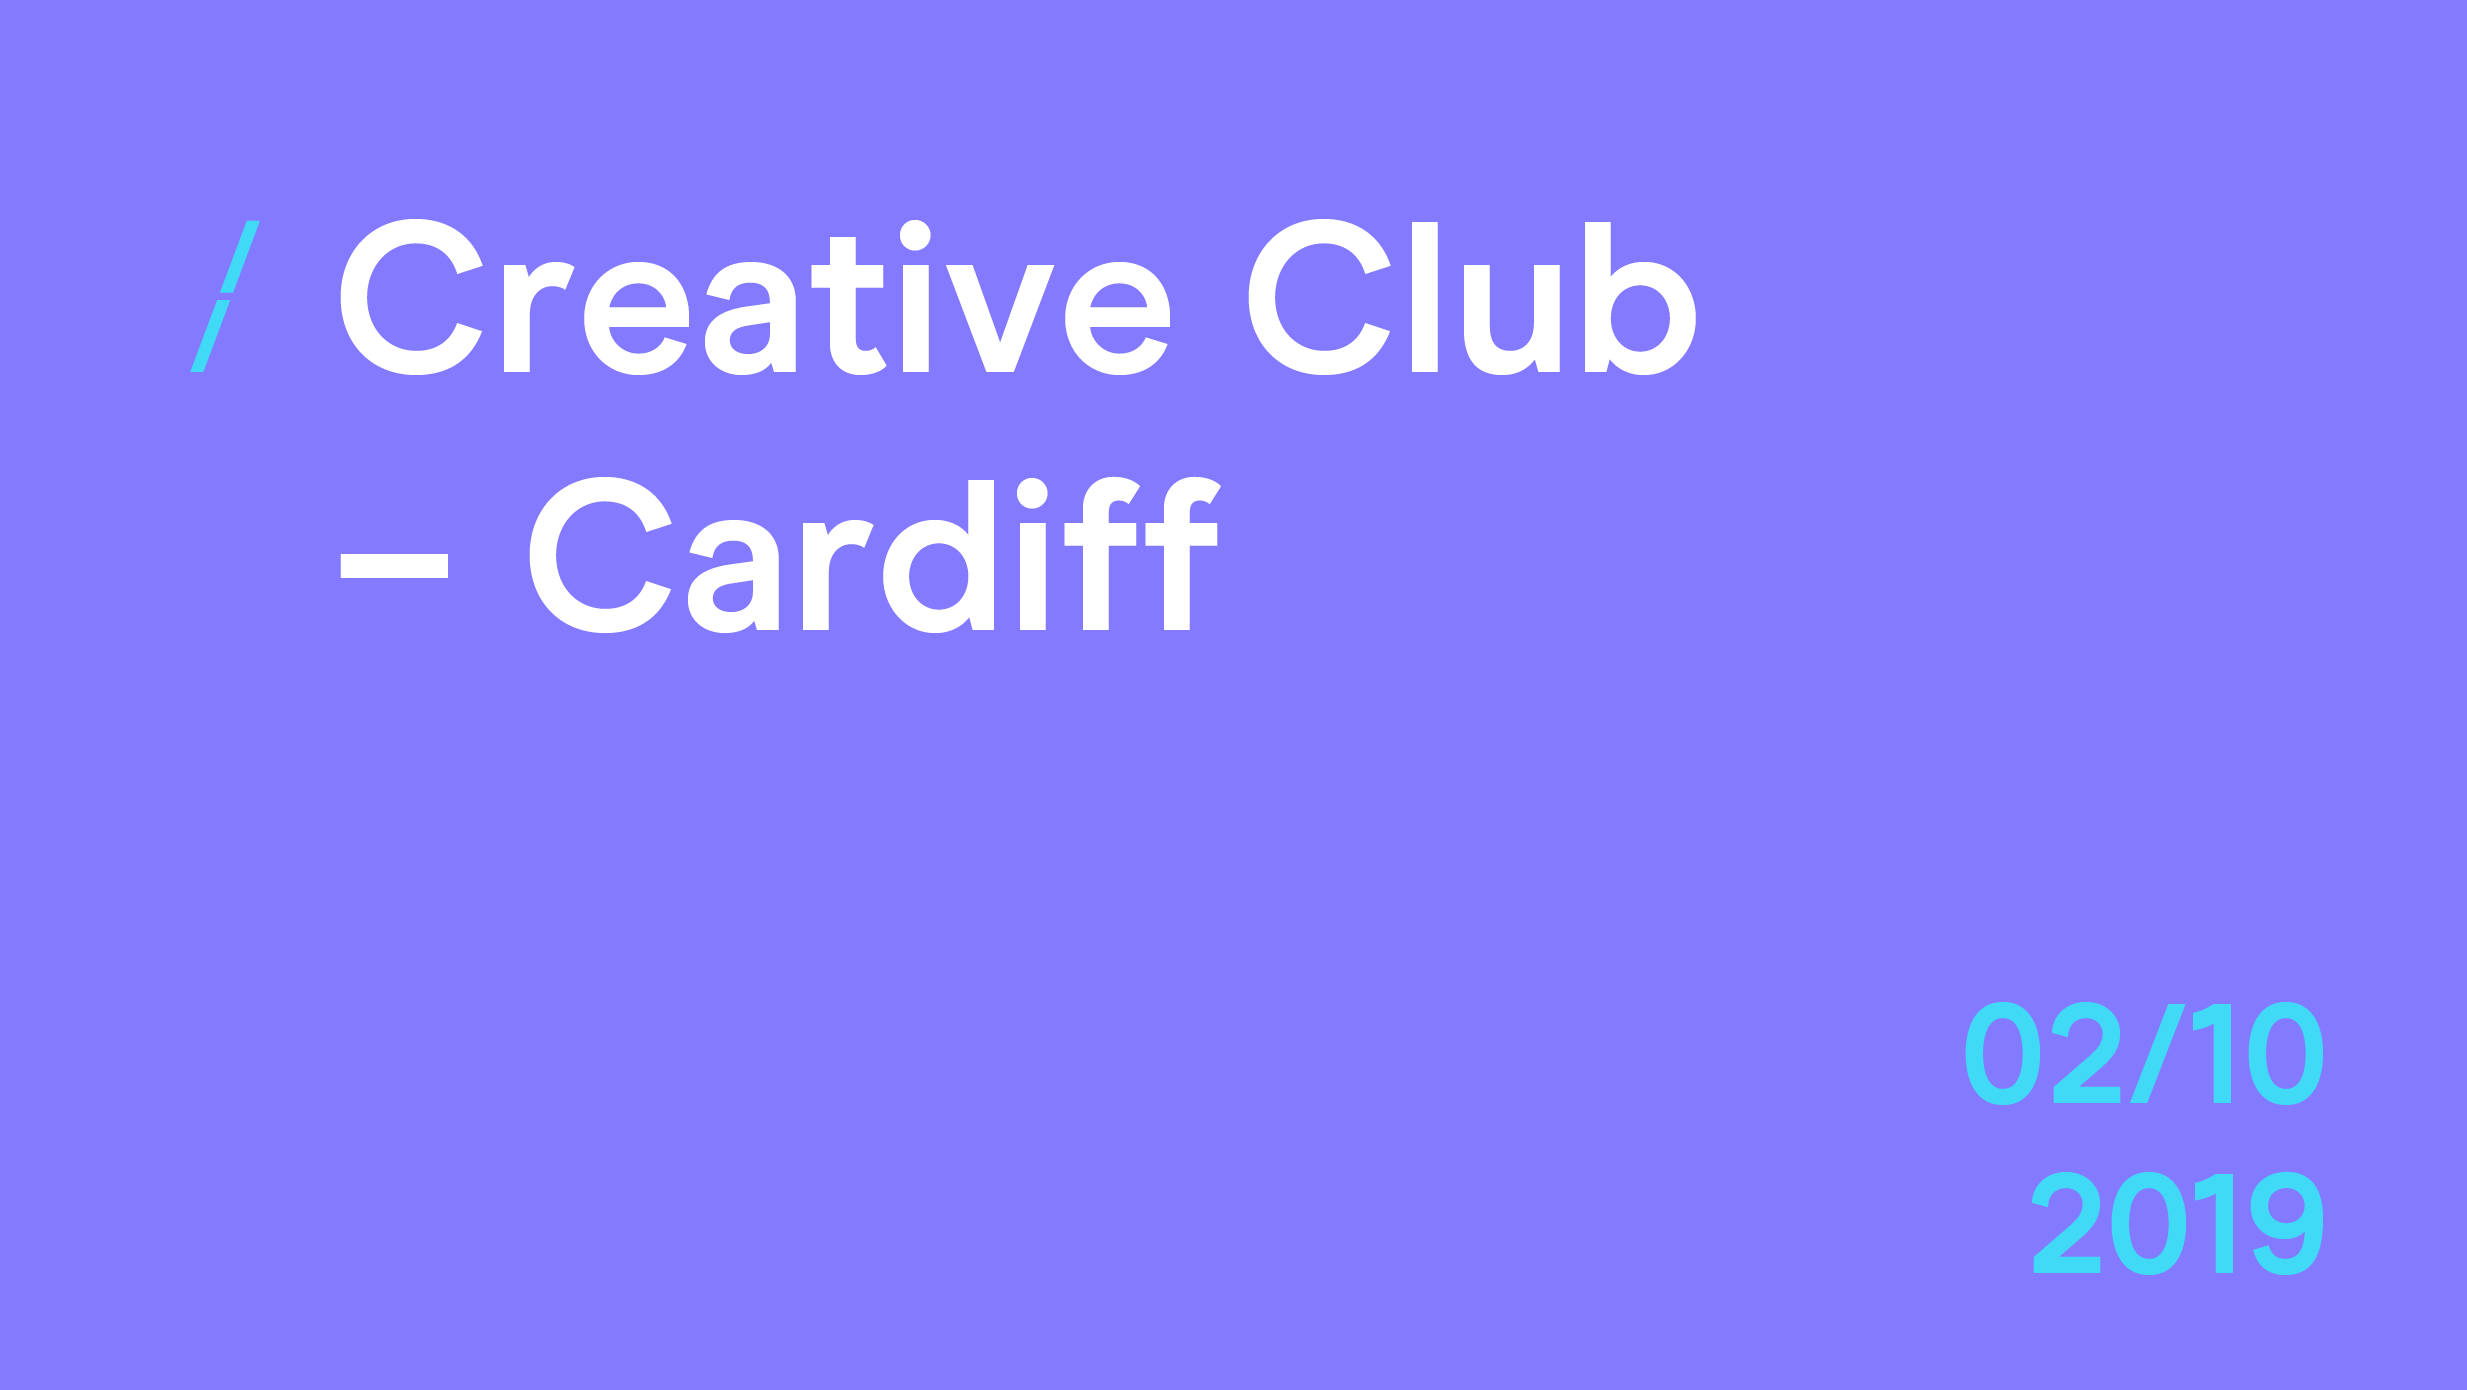 Creative Club Cardiff web image.png